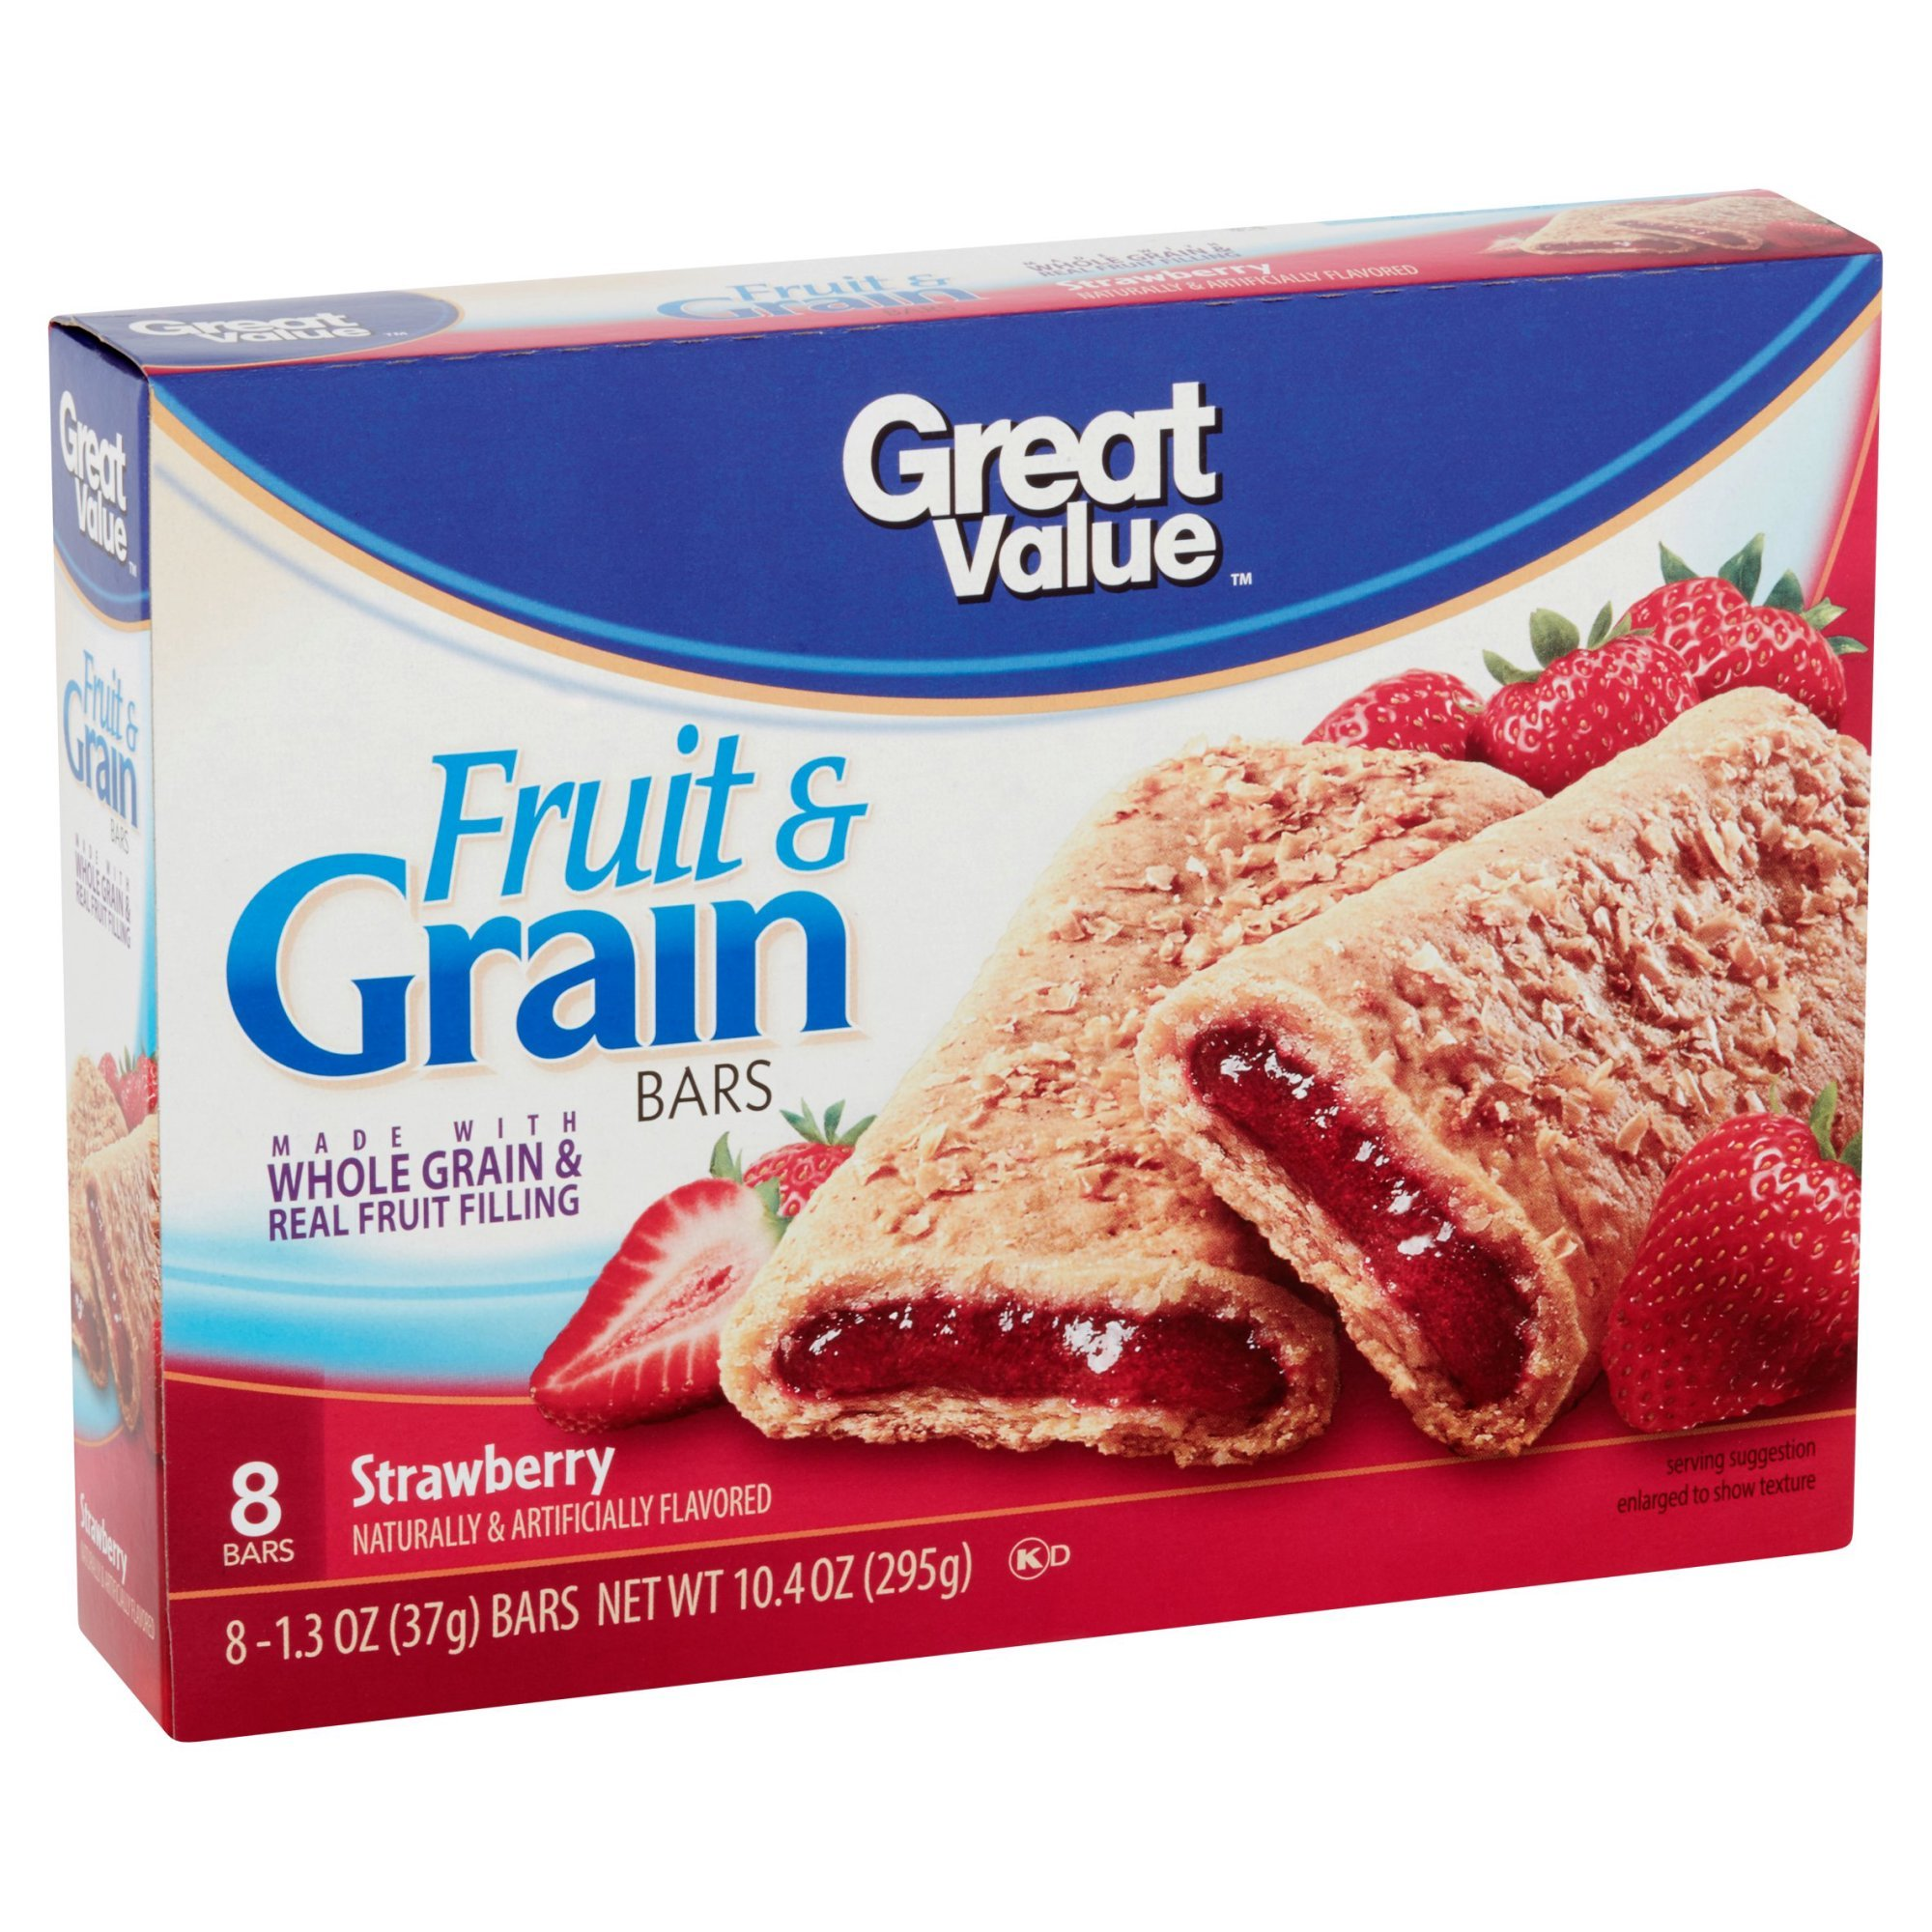 Strawberry Fruit & Grain Bars, 10.4 oz by Great Value